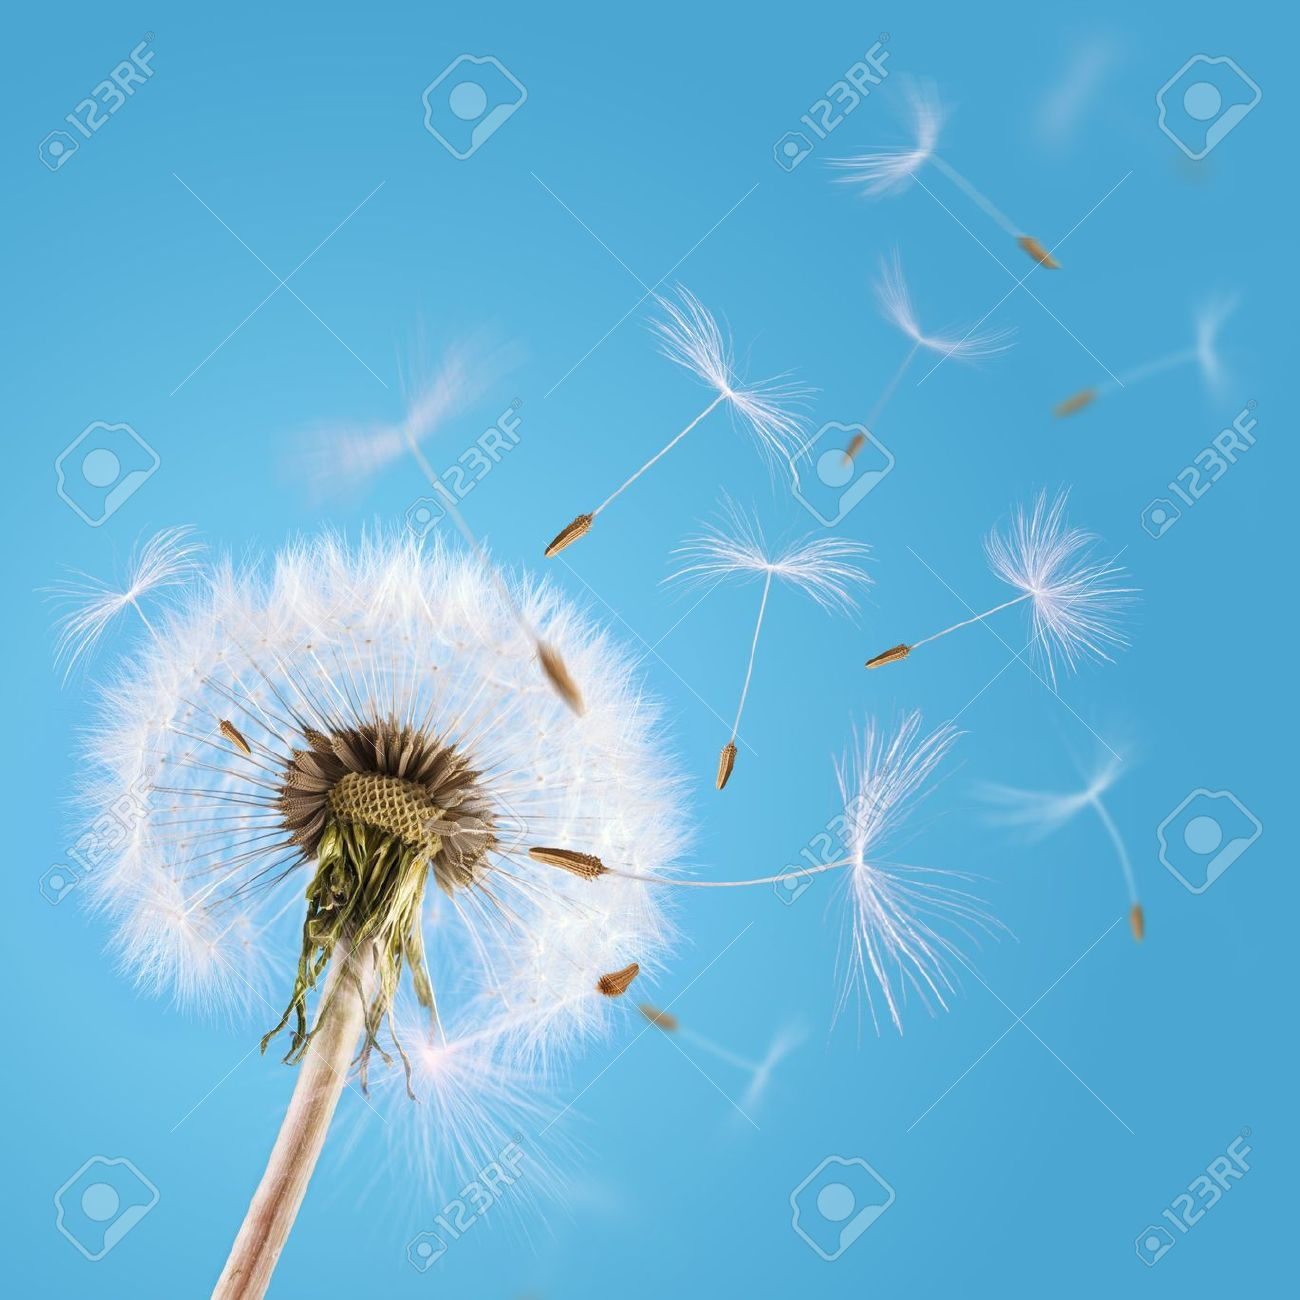 Overblown dandelion with seeds flying away with the wind - 13044613